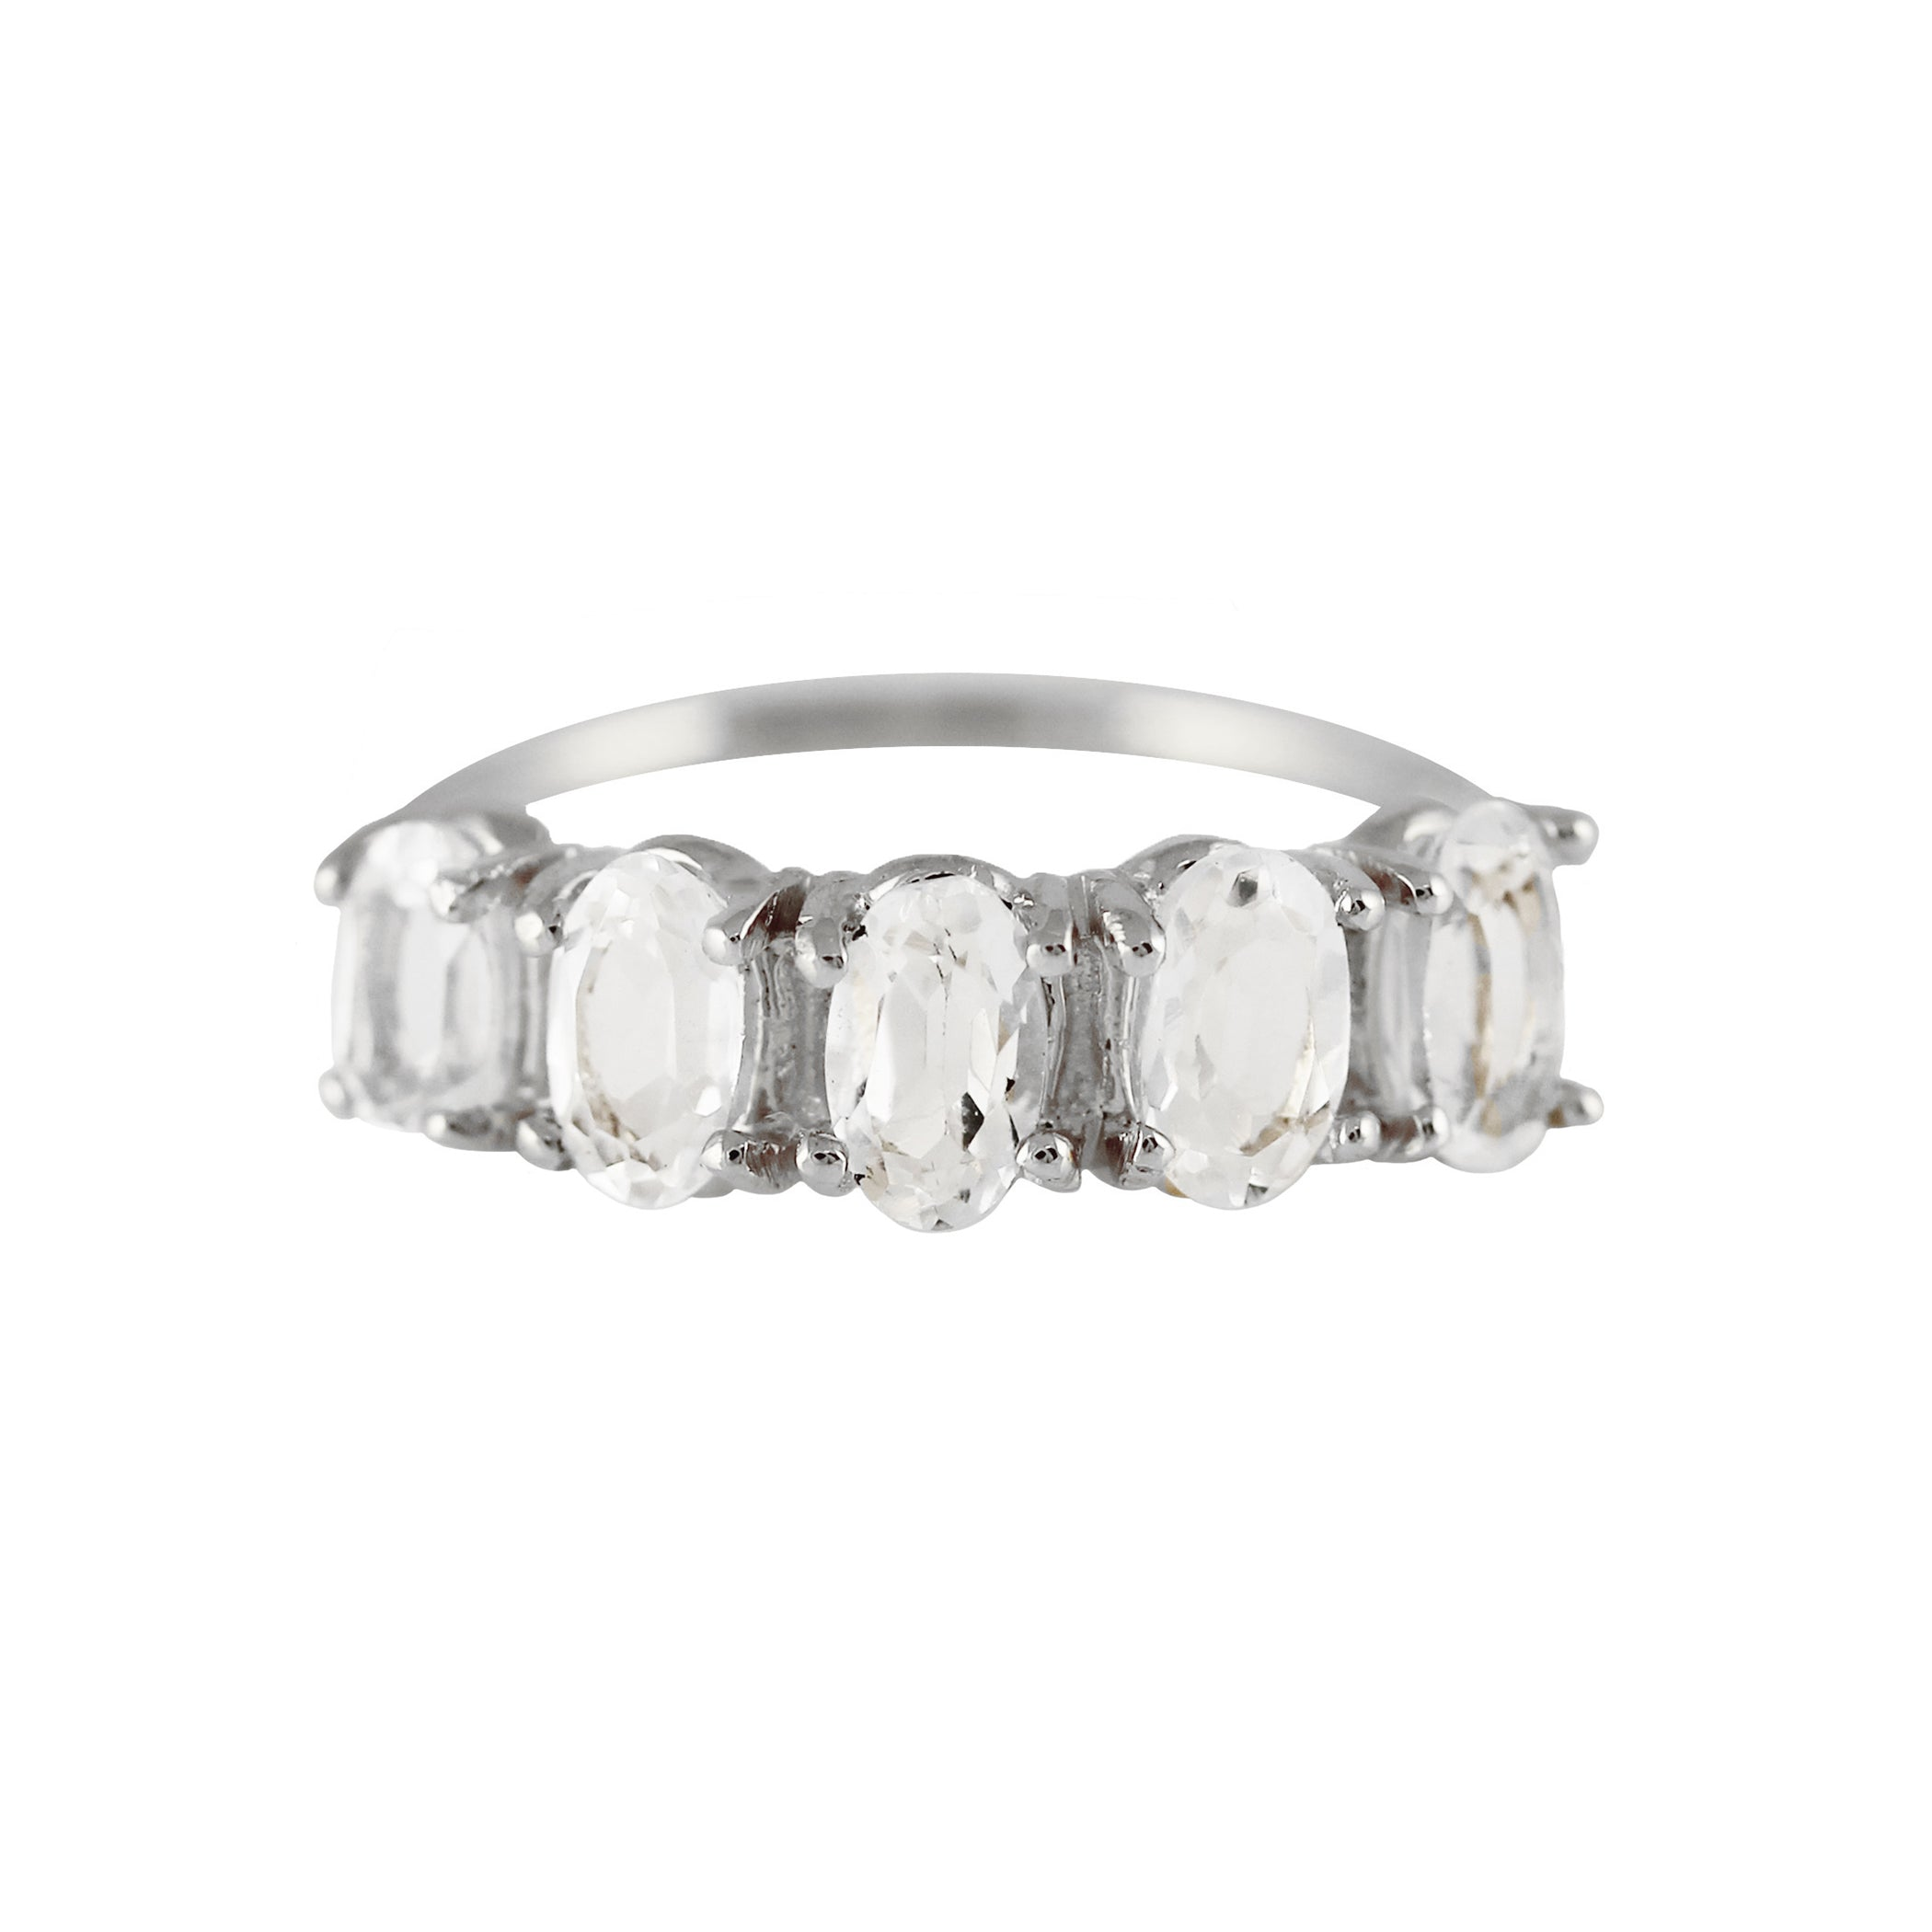 5 OVAL WHITE TOPAZ RING